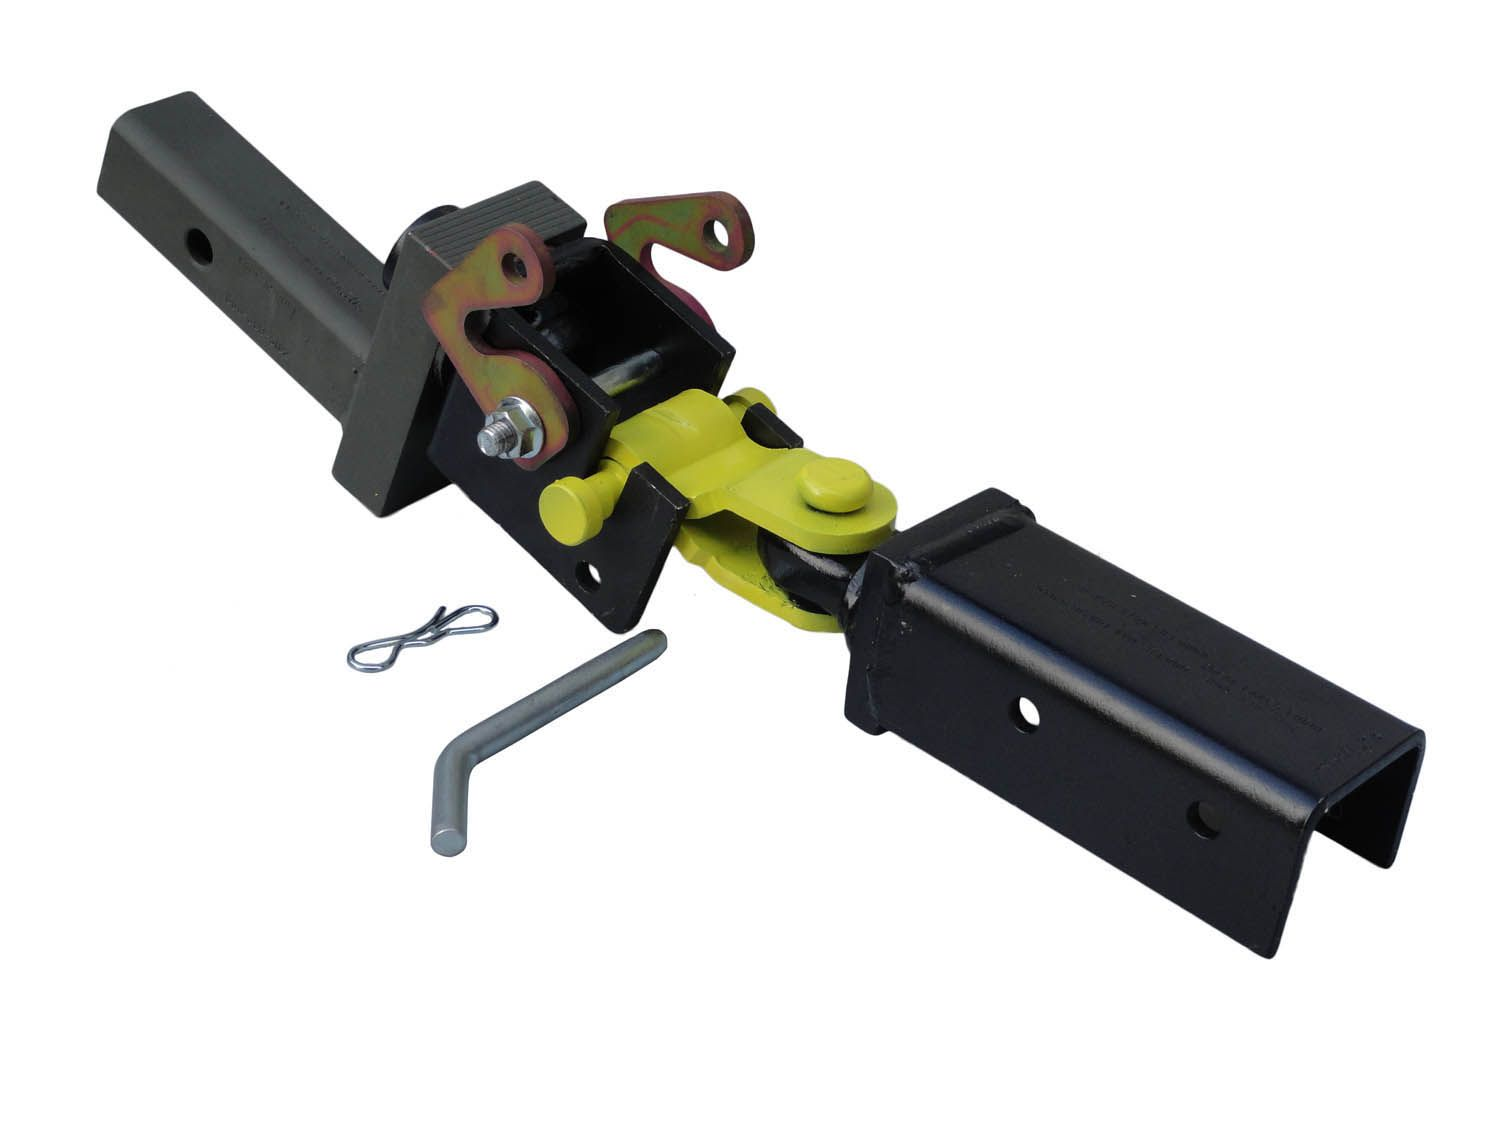 Lock n roll trailer hitches provide improved safety and